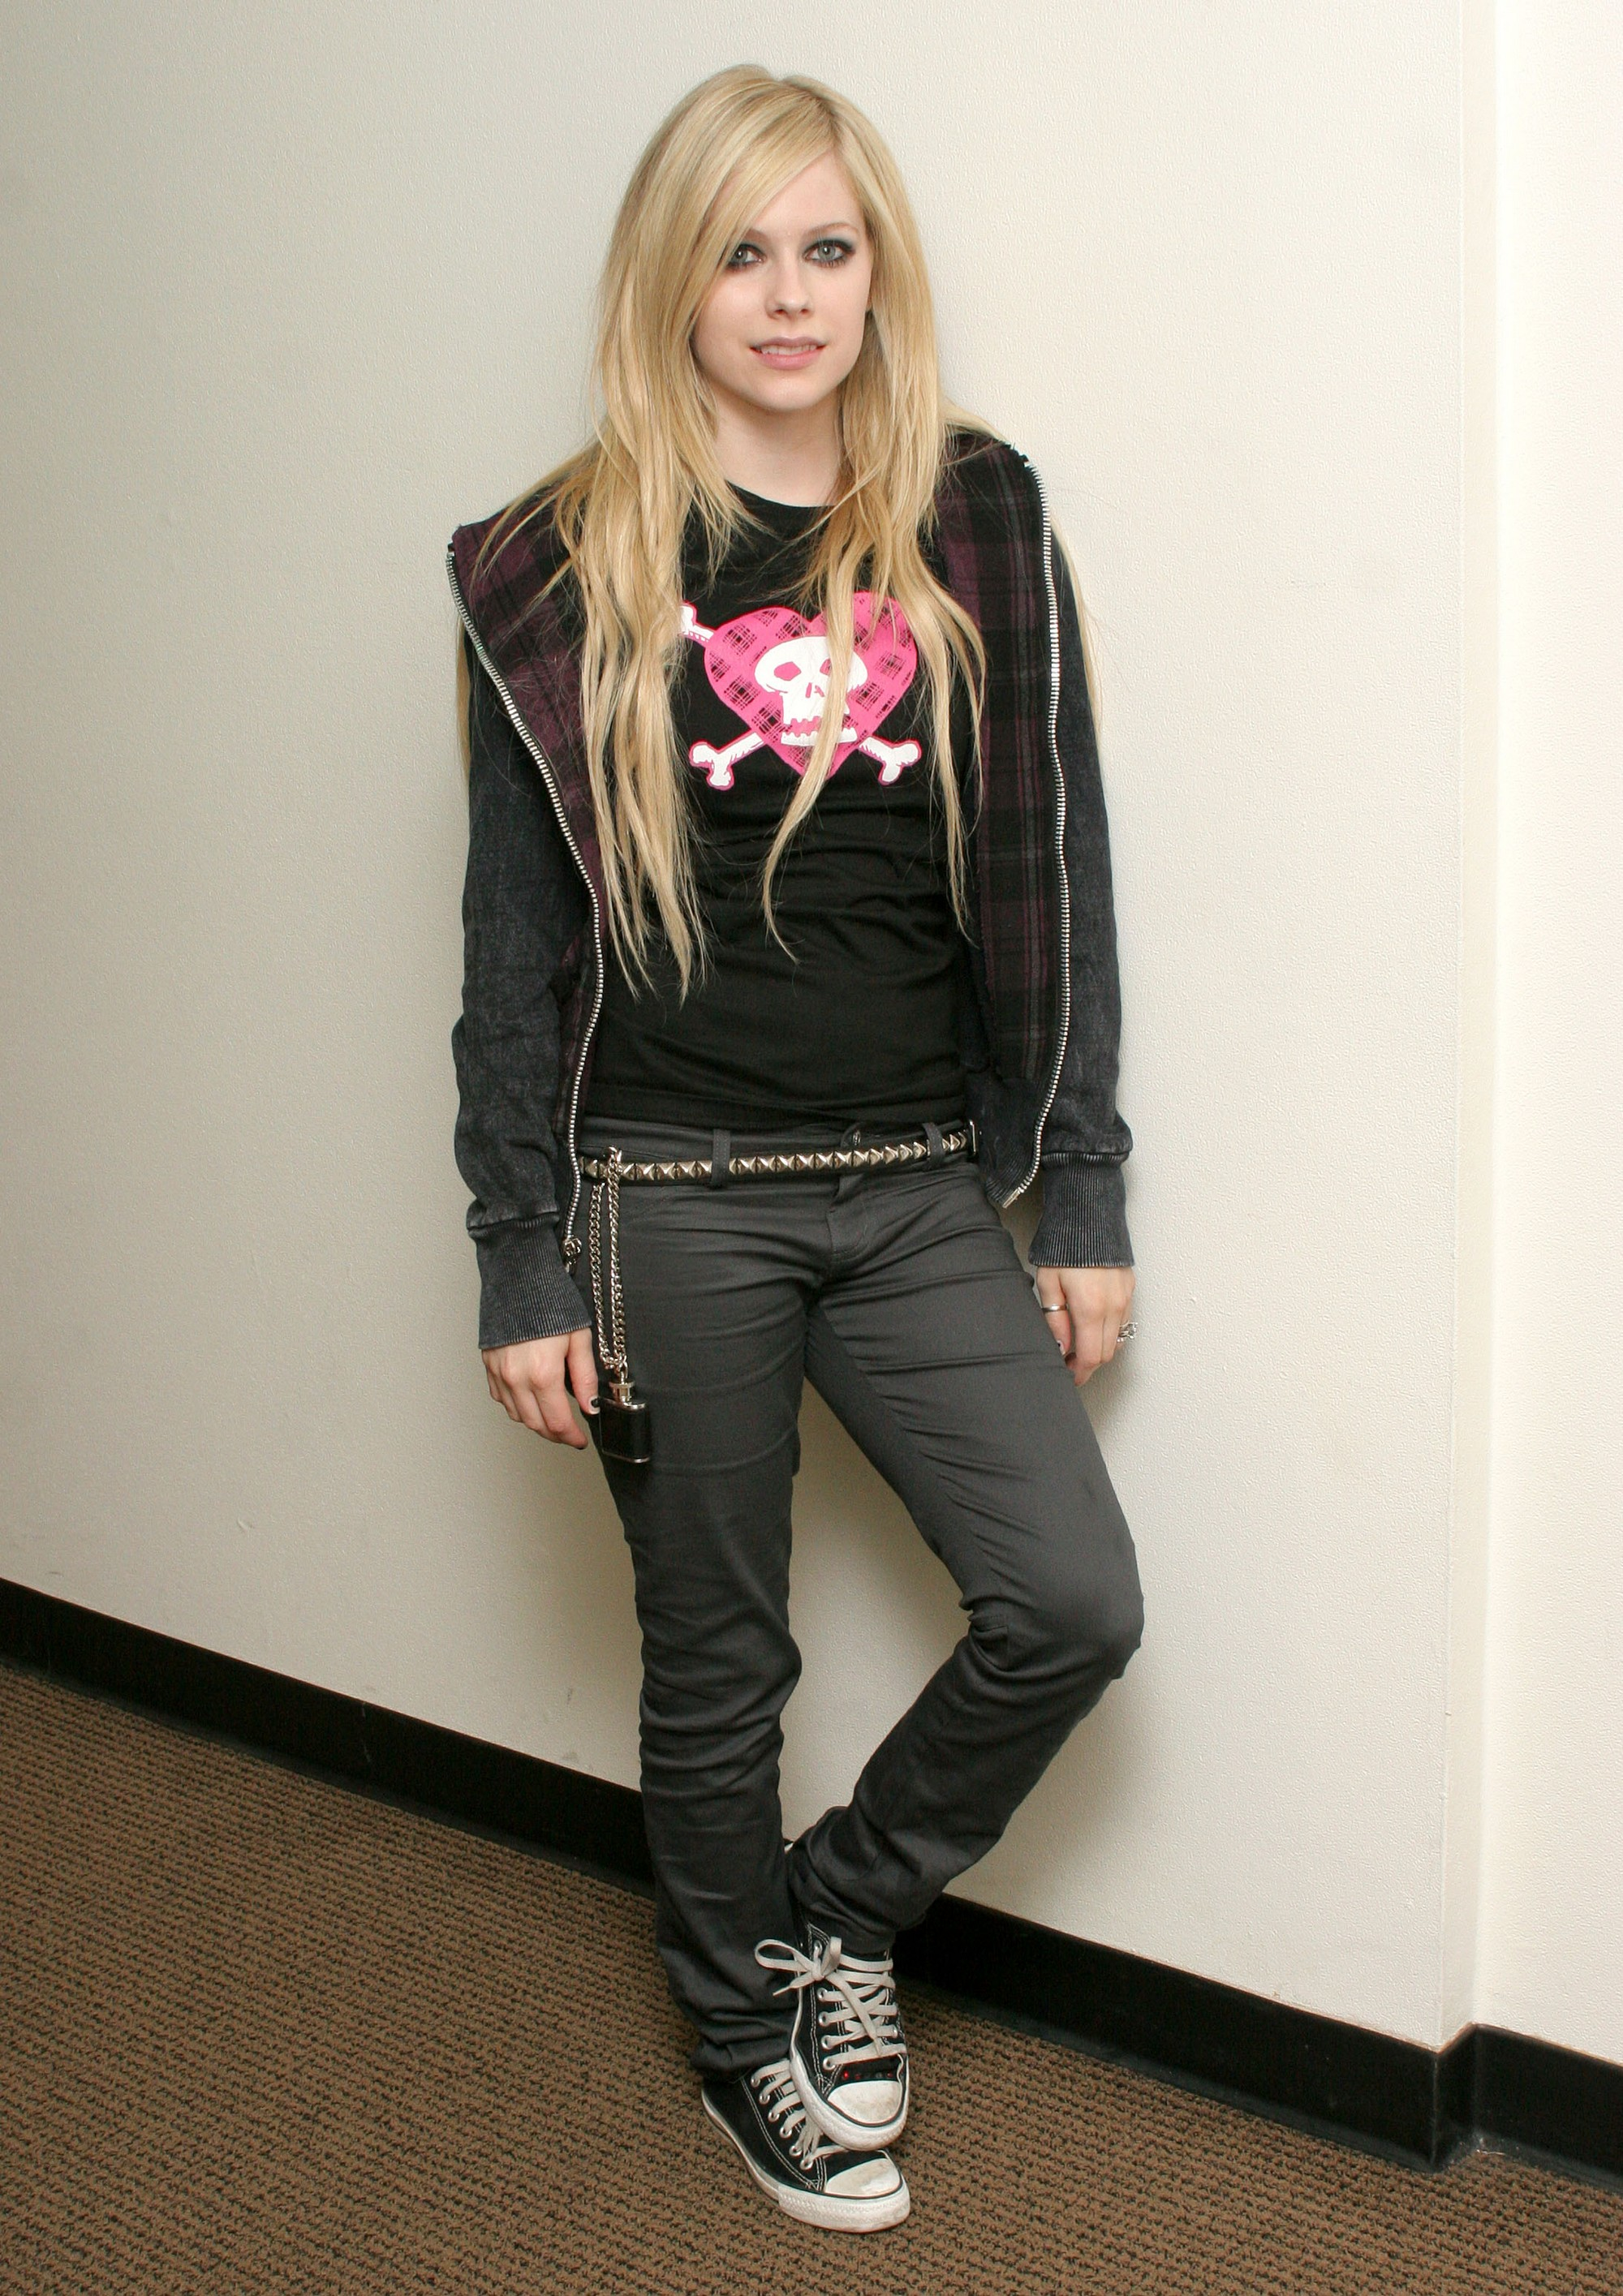 http://www.avrilpix.com/albums/Photoshoots/Carson%20Daily%20Show%202007/03.jpg